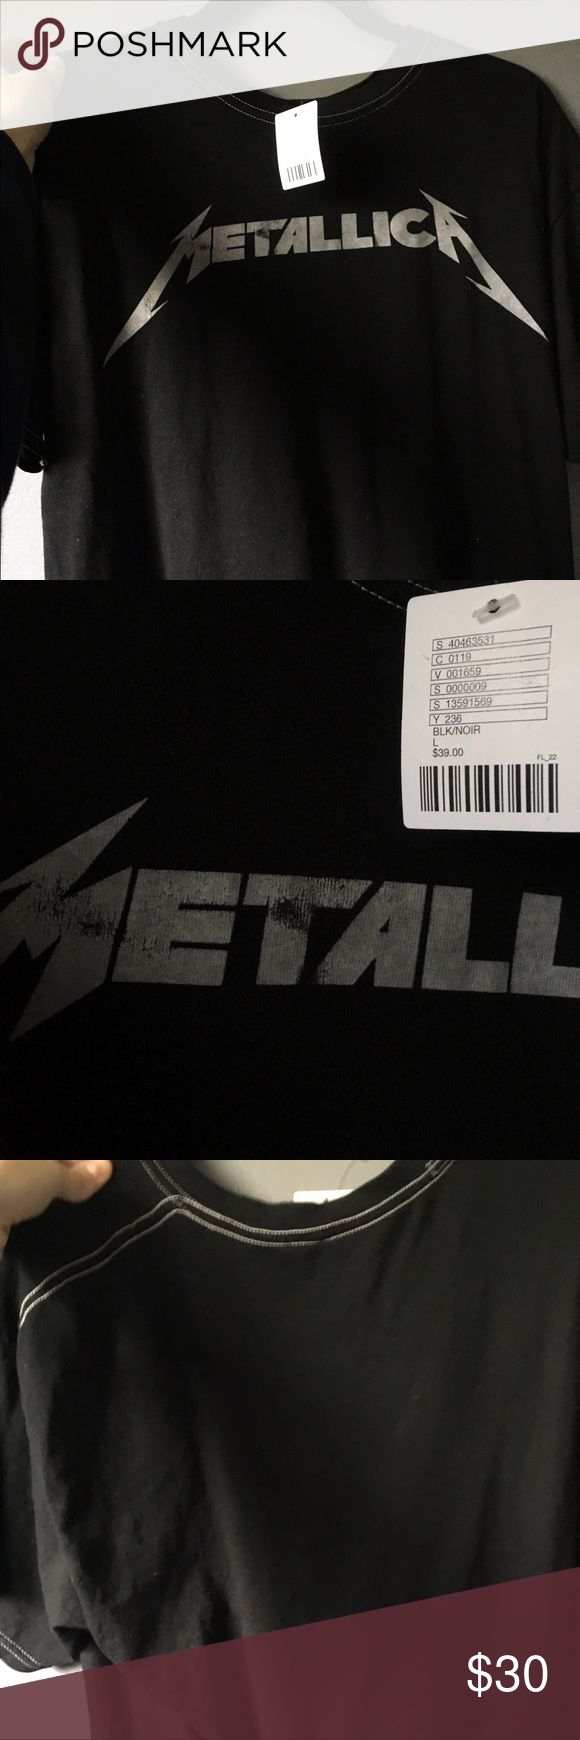 Urban Outfitters Metallica Band Tee Brand new WITH tags Band Tee. It fits oversized and the stitching is white. Some fading on the letters but it came that way. I am open to trades or offers Urban Outfitters Tops Tees - Short Sleeve